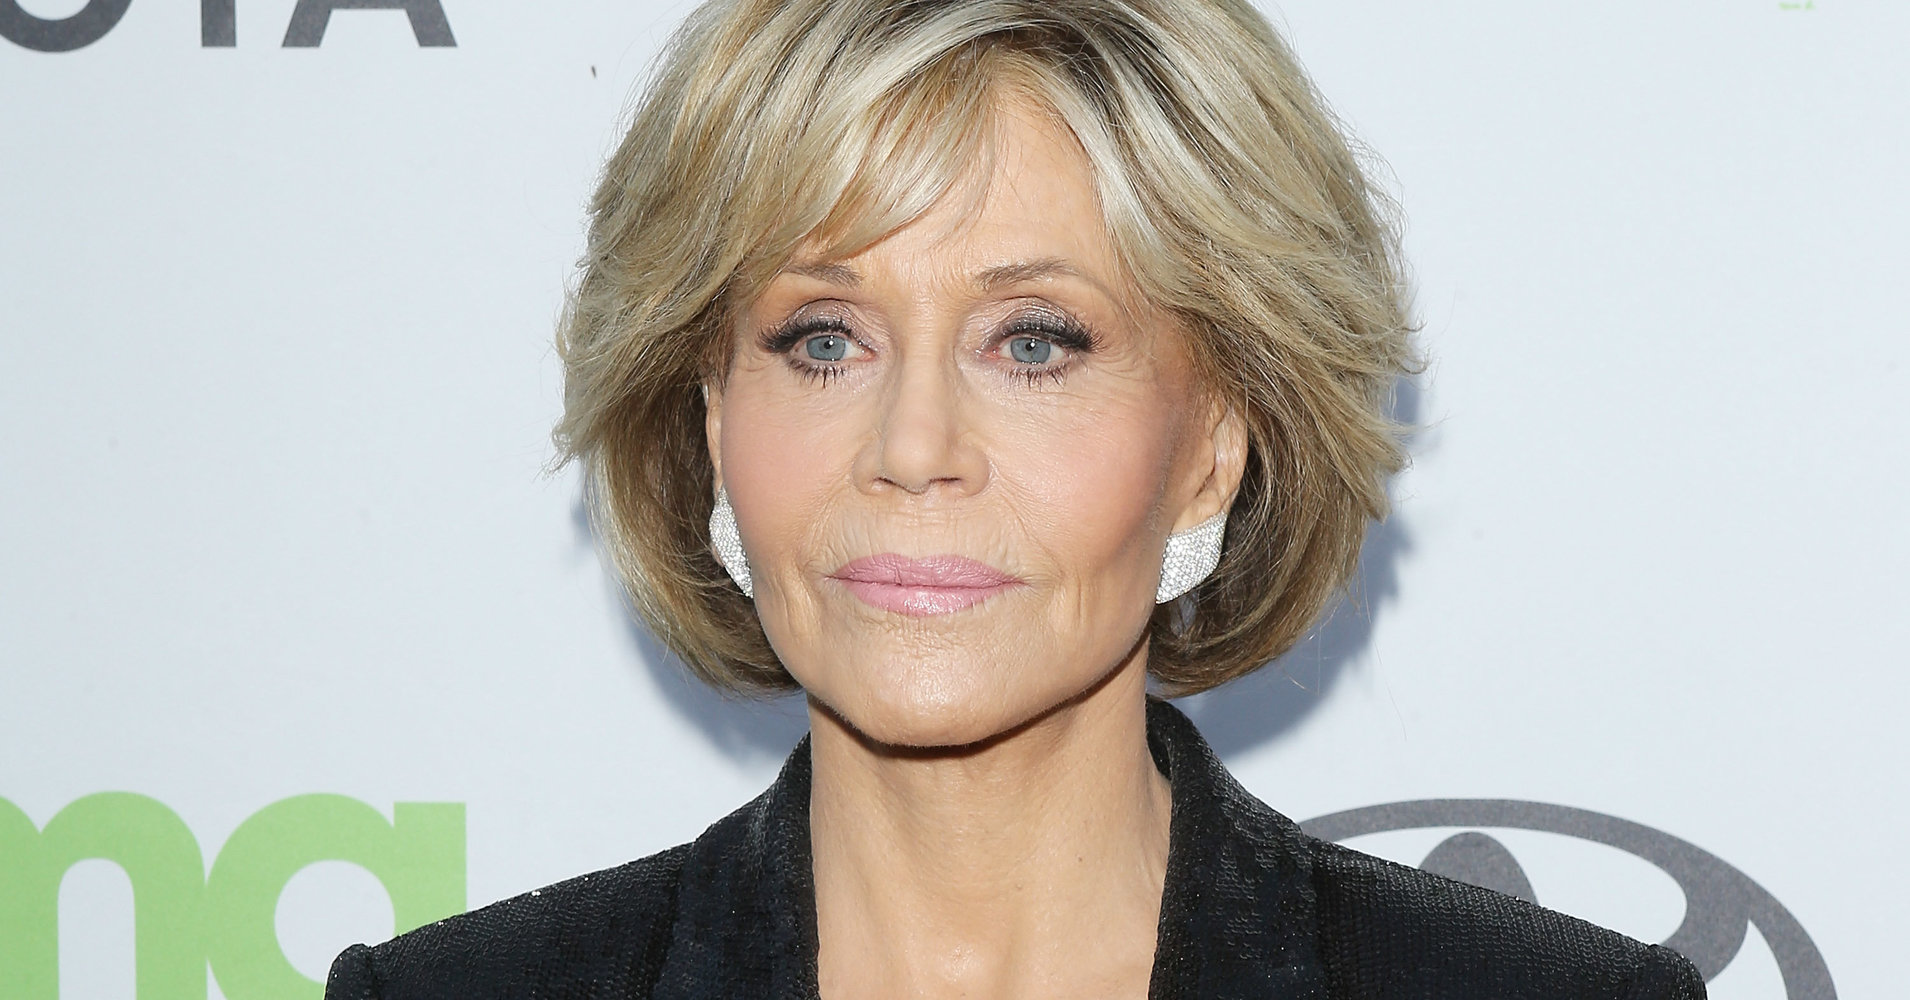 Barbara walters on jane fonda 2018